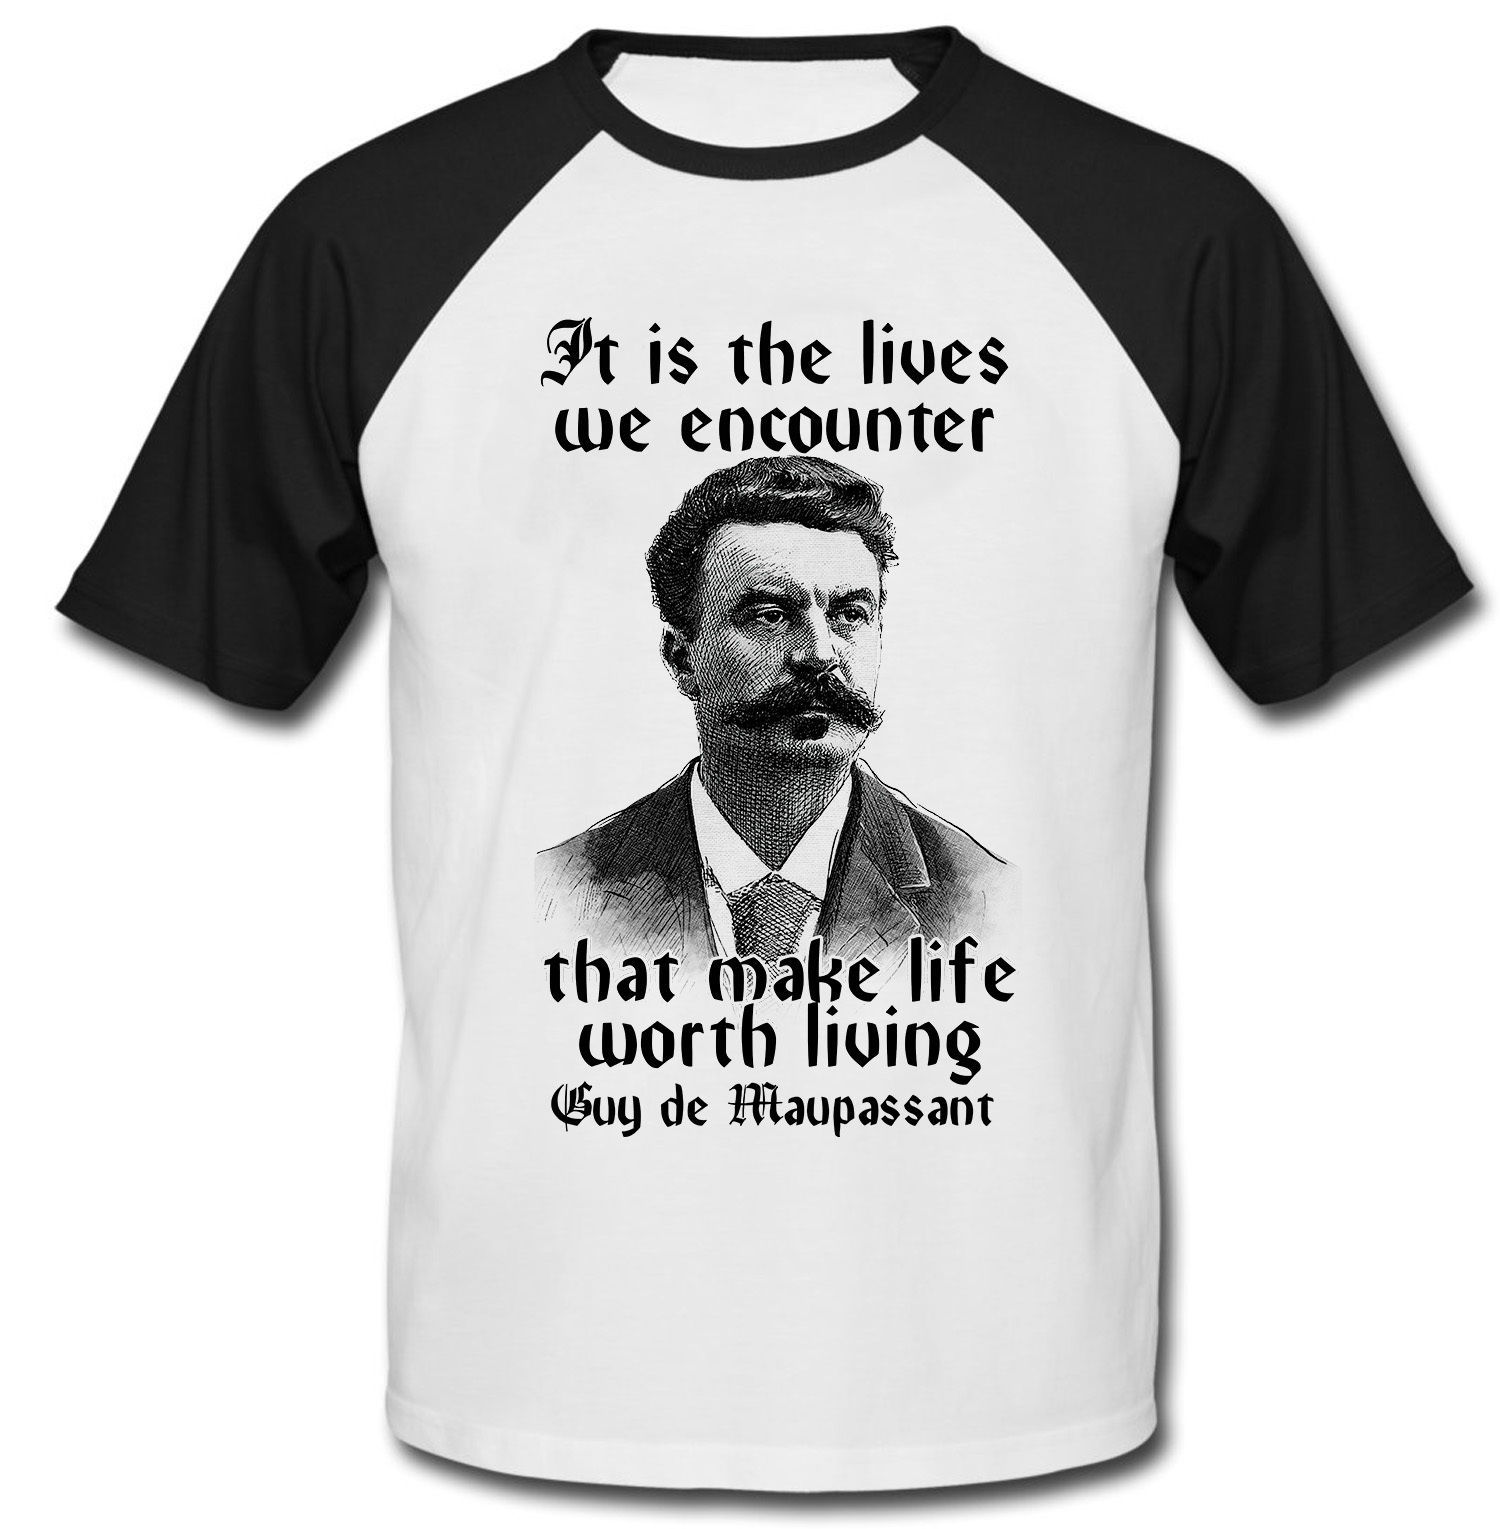 GUY DE MAUPASSANT WORTH LIVING QUOTE - NEW COTTON BASEBALL TSHIRT